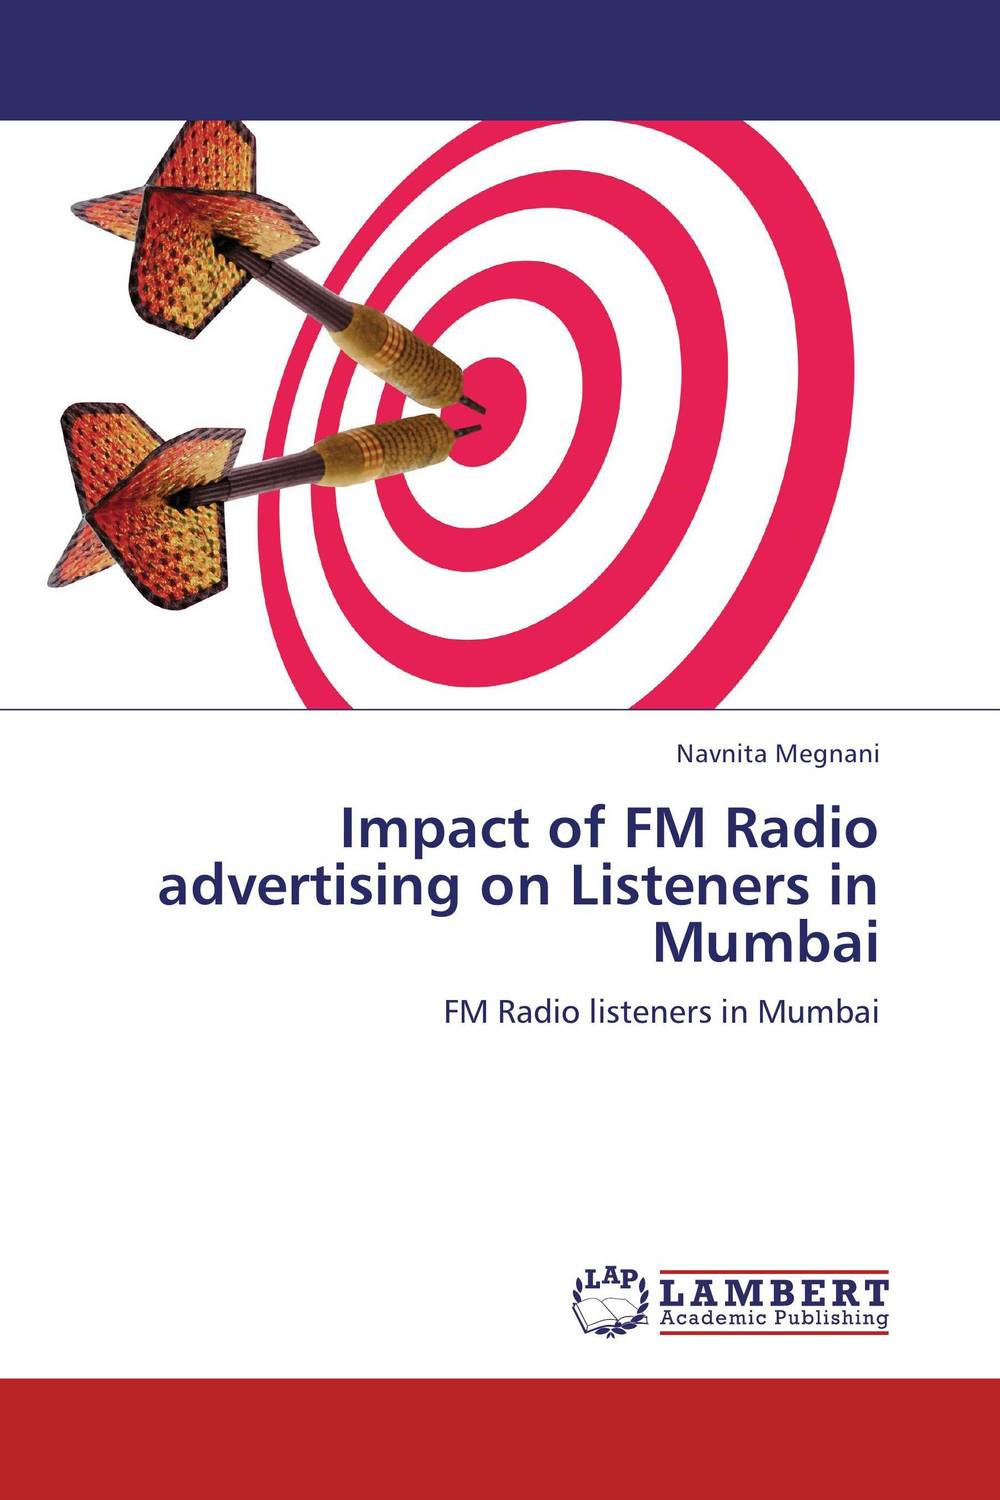 Impact of FM Radio advertising on Listeners in Mumbai